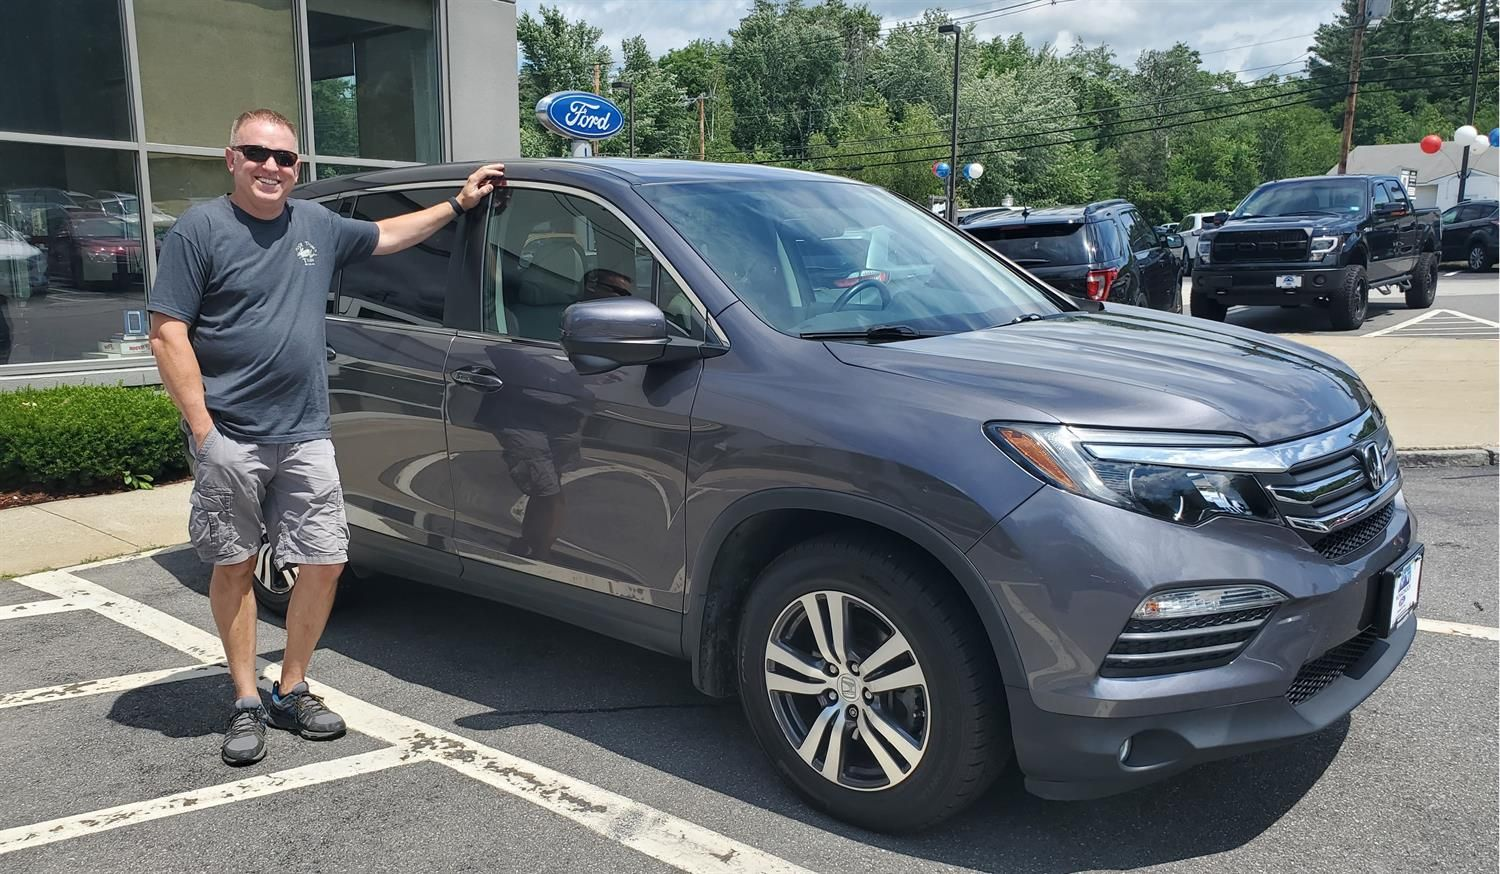 Oliver We Heard You Re Head Over Wheels In Love With Your New 2017 Honda Pilot Congratulations From Monadnock Ford Cra In 2020 2017 Honda Pilot Honda Pilot Honda